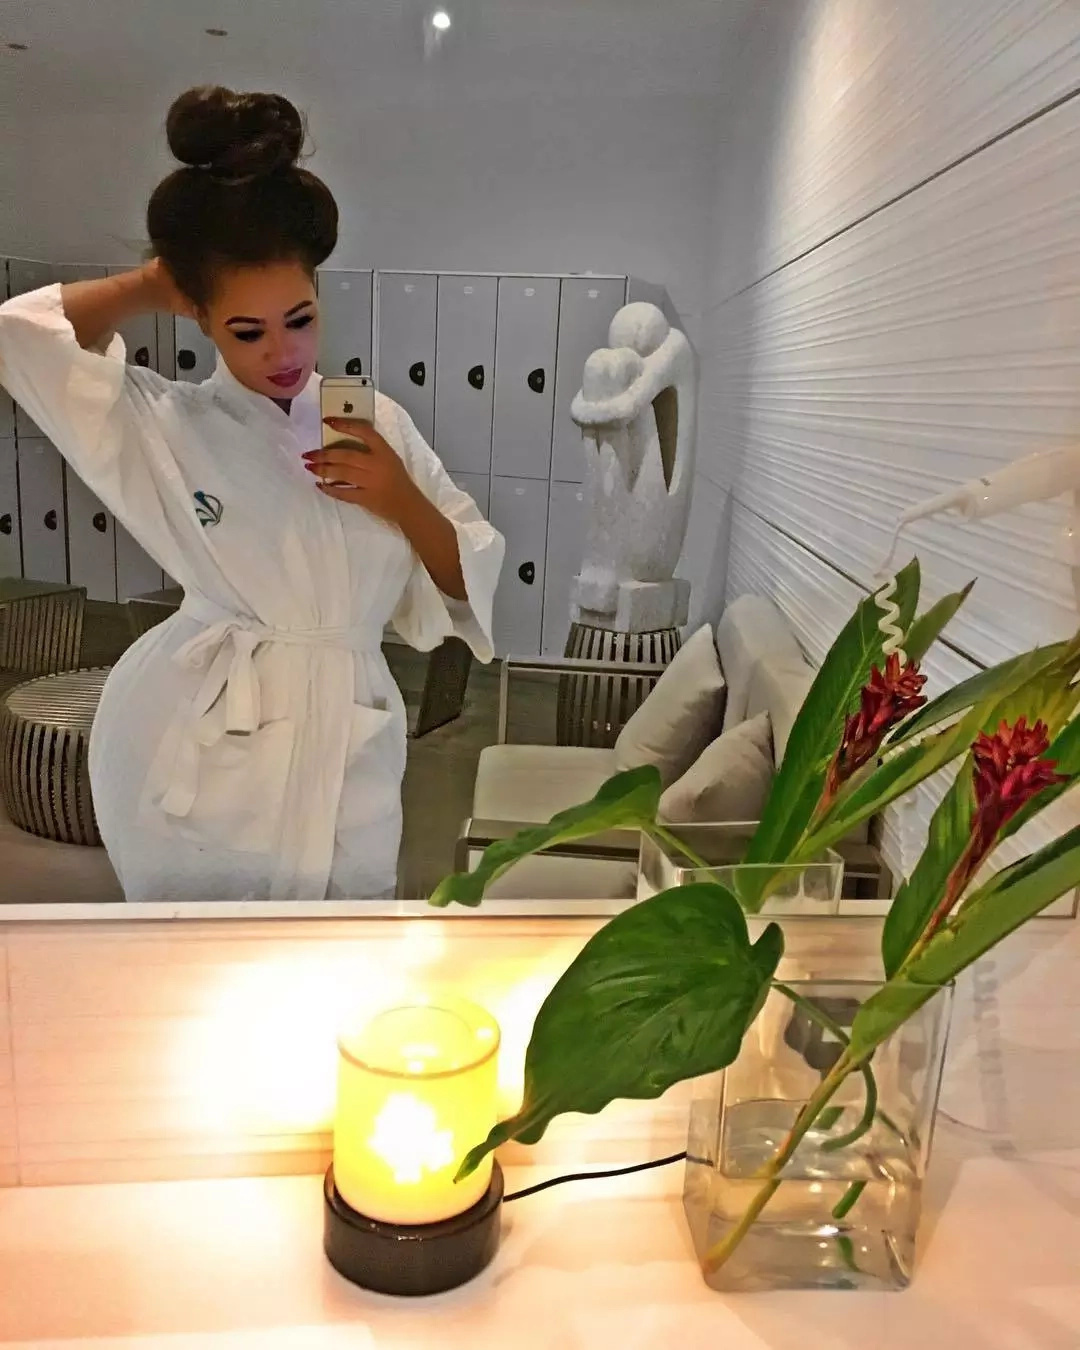 Vera Sidika responds after inappropriate photos of herself surfaced online